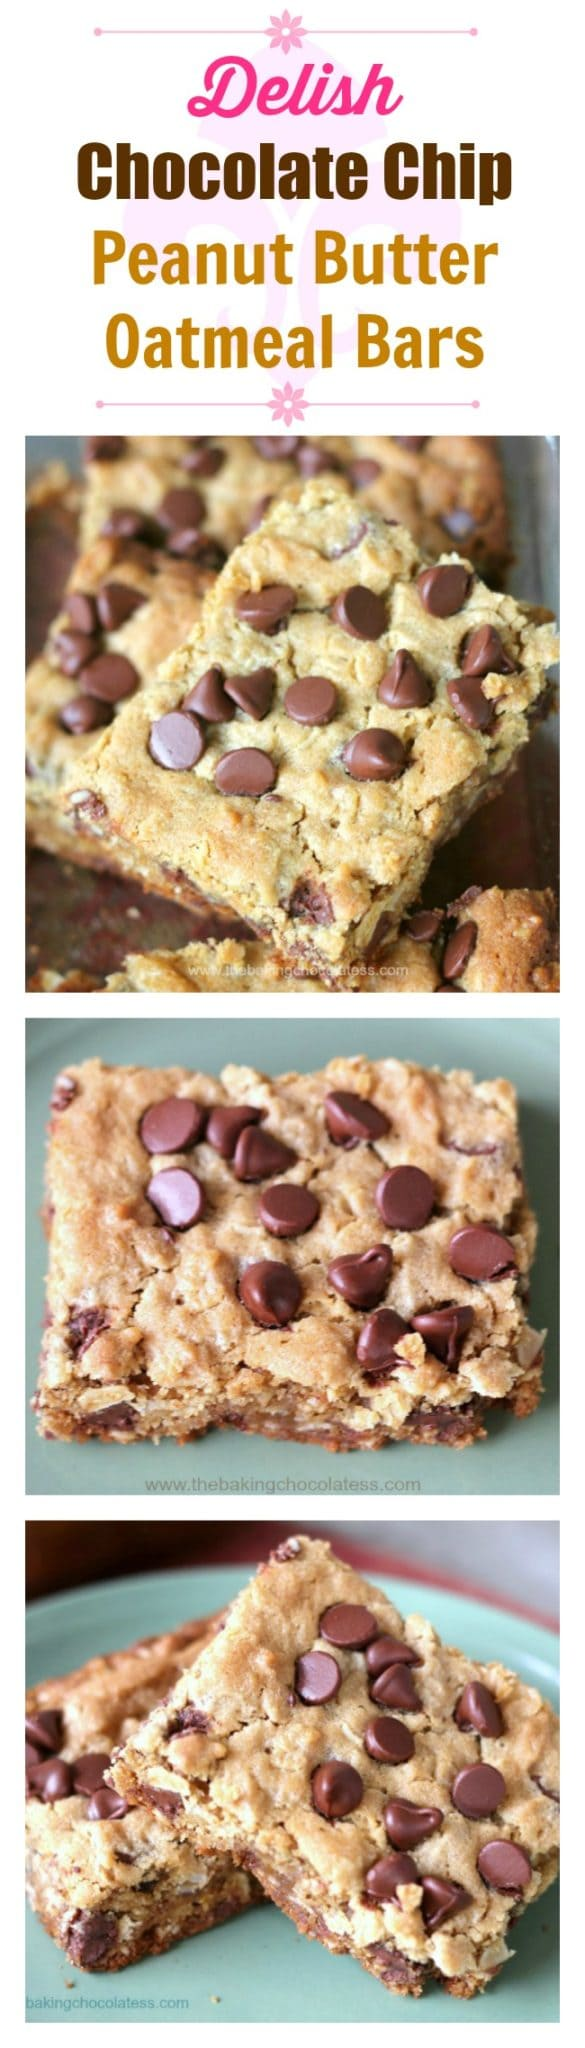 Delish Chocolate Chip Peanut Butter Oatmeal Bars – The Baking ...